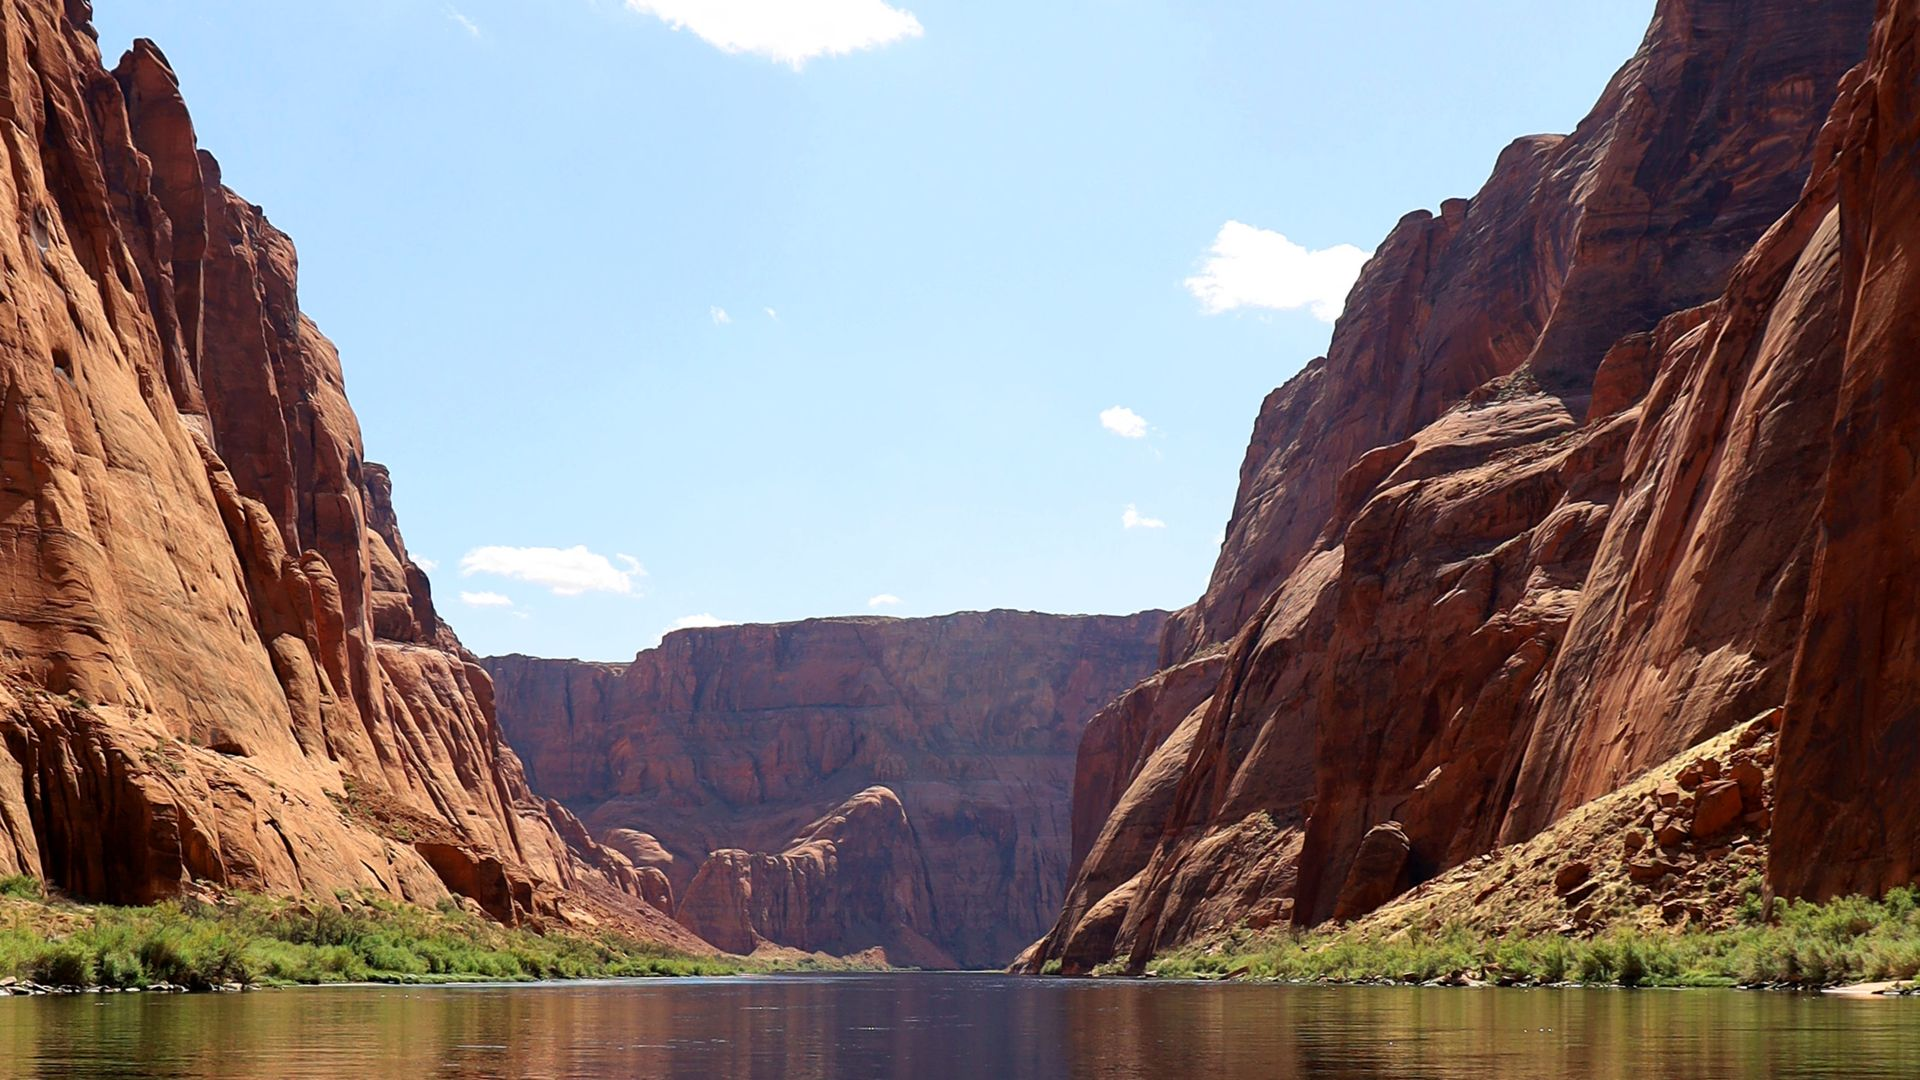 Standing in the middle of the Colorado River looking down-canyon with red rock rising on both sides